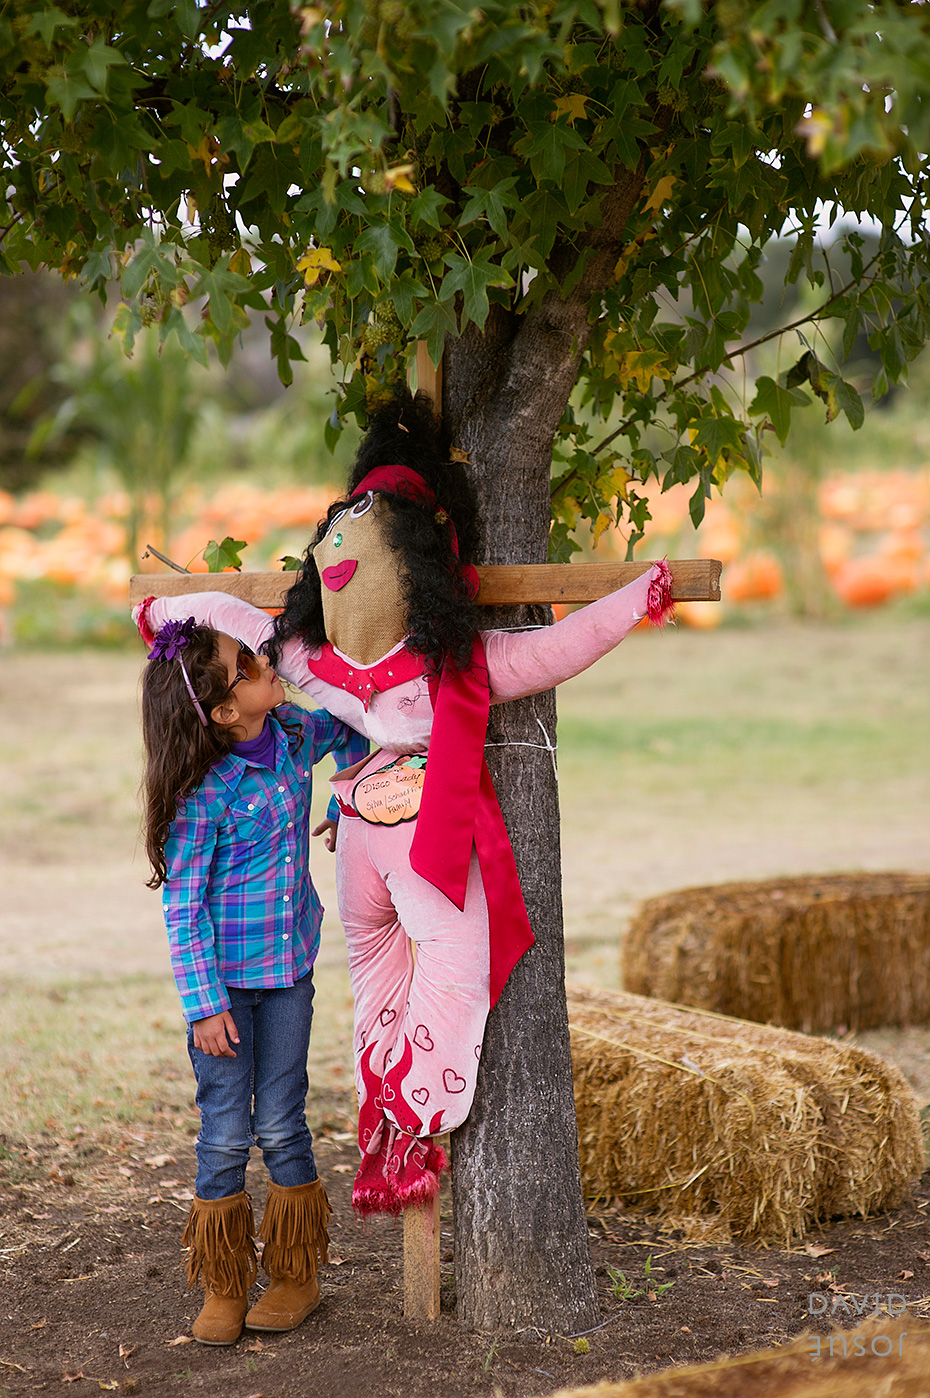 0051_cumple_suegro_bates-nut-farm-pumpkin-patch_101013-edit